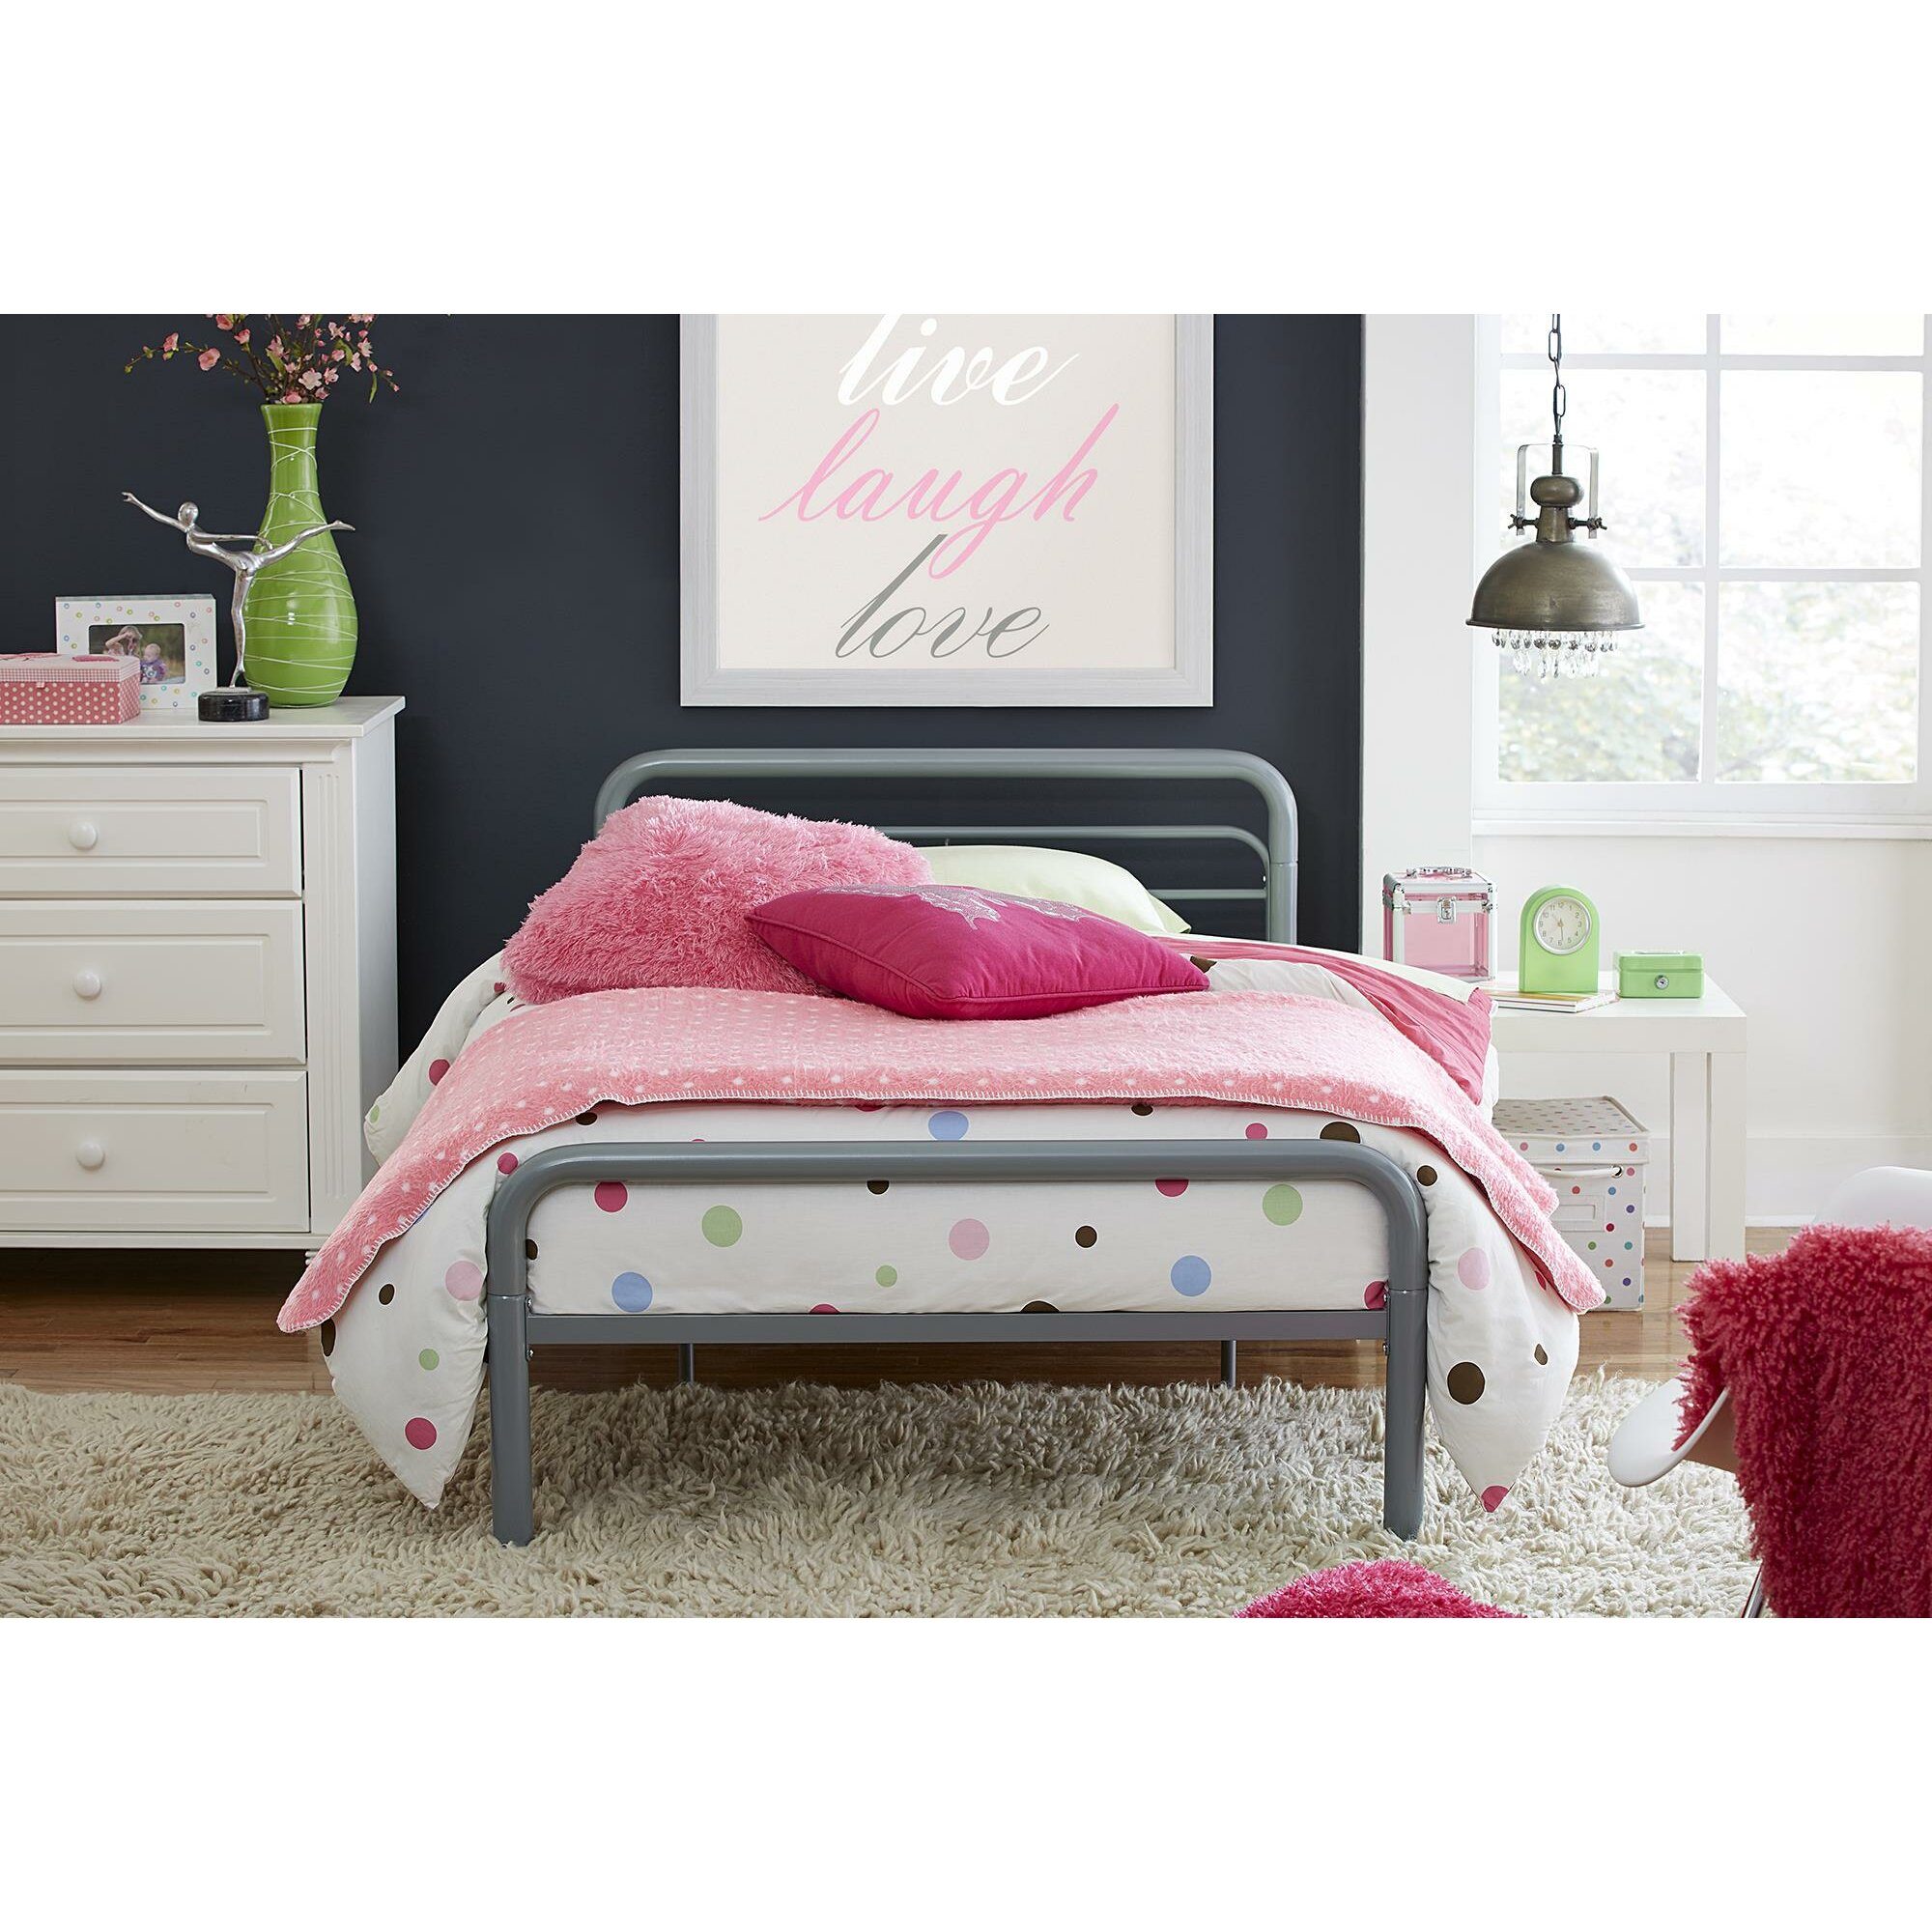 Twin Platform Bed Metal Kids Beds You ll Love Wayfair  Sleigh Silver Dhp  Beds VesmaEducation. Sleigh Gold Dhp Beds   getpaidforphotos com